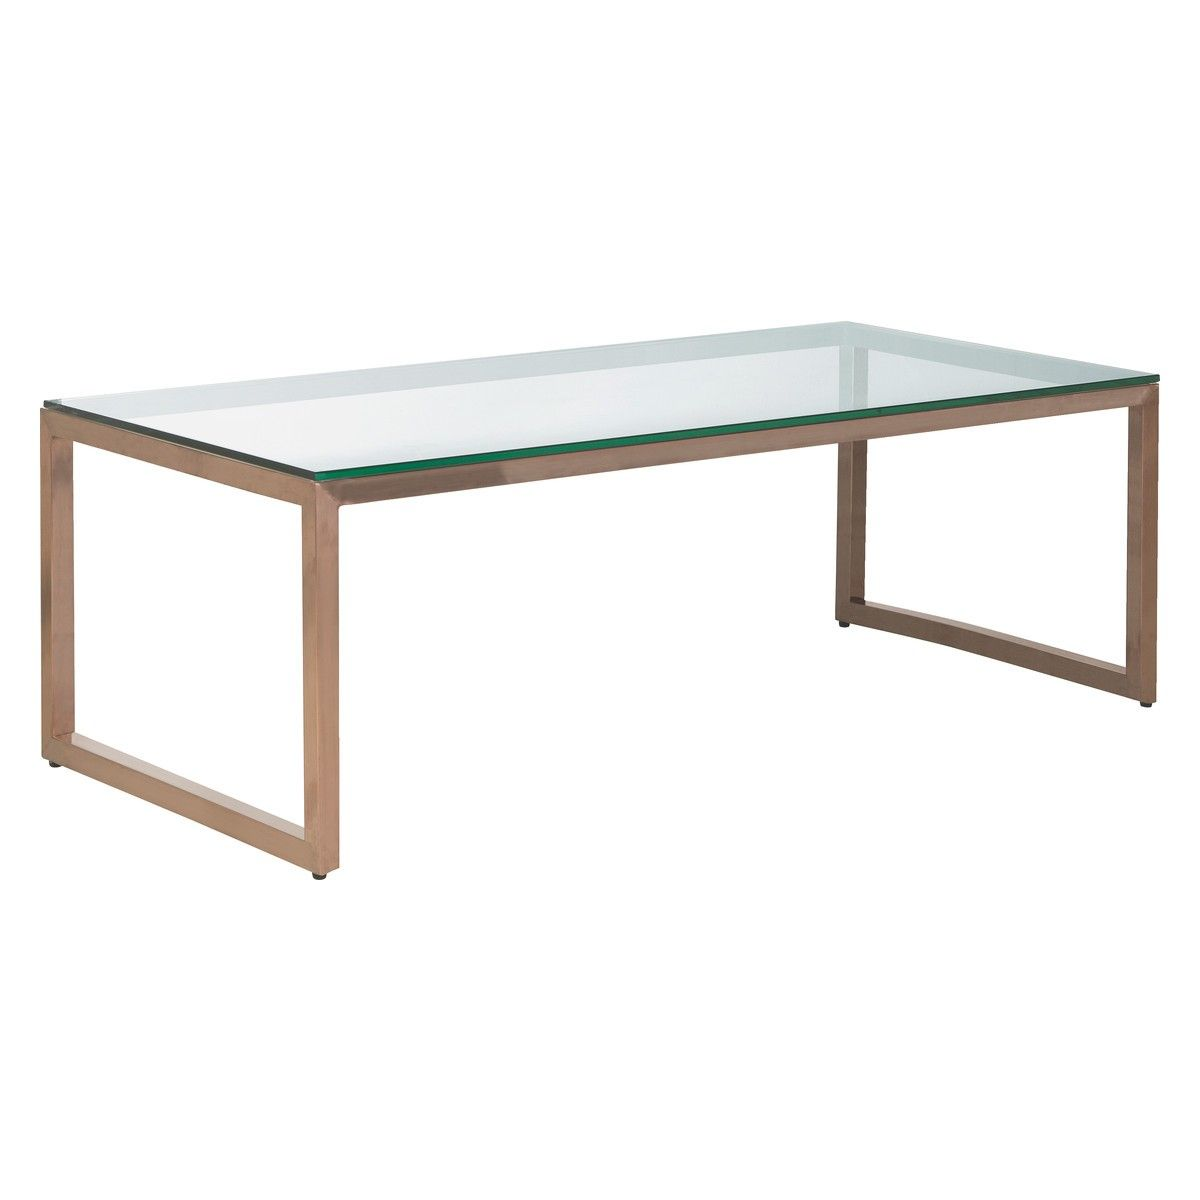 Habitat Herrmann Square Glass Coffee Table: TILDA Glass Coffee Table With Copper Base